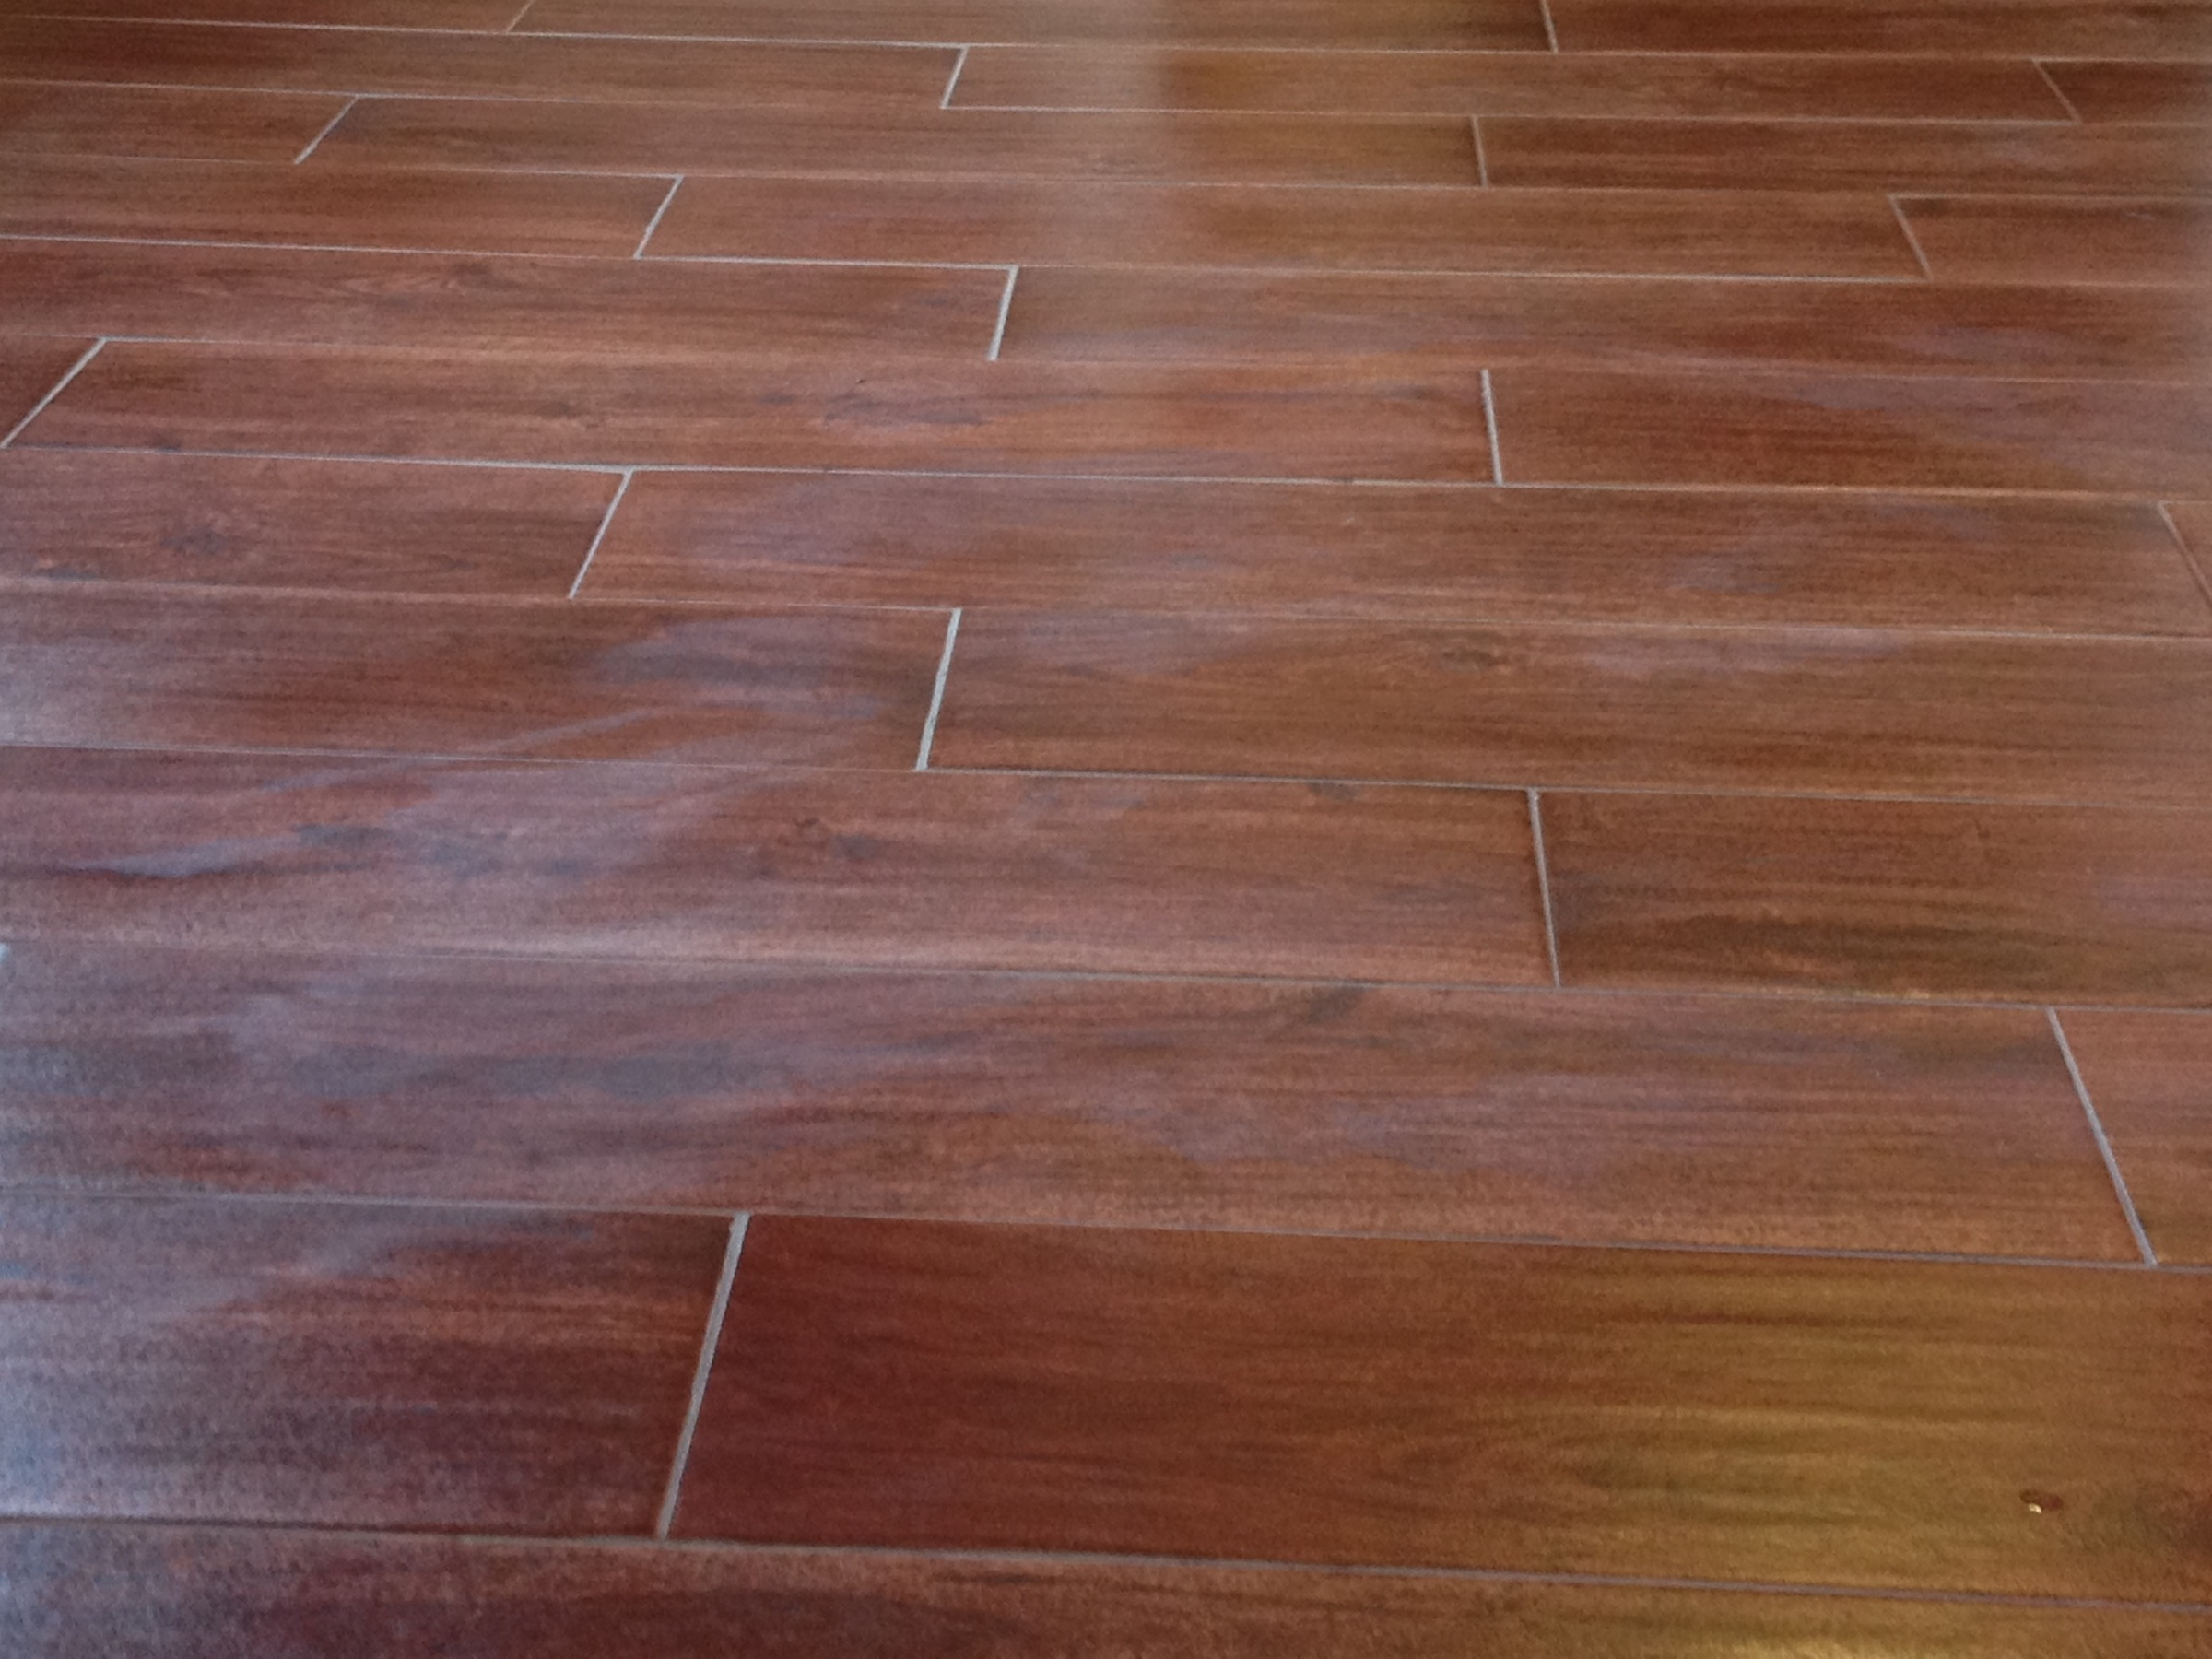 Grout Haze Left By Professional Tile Installer Tiles